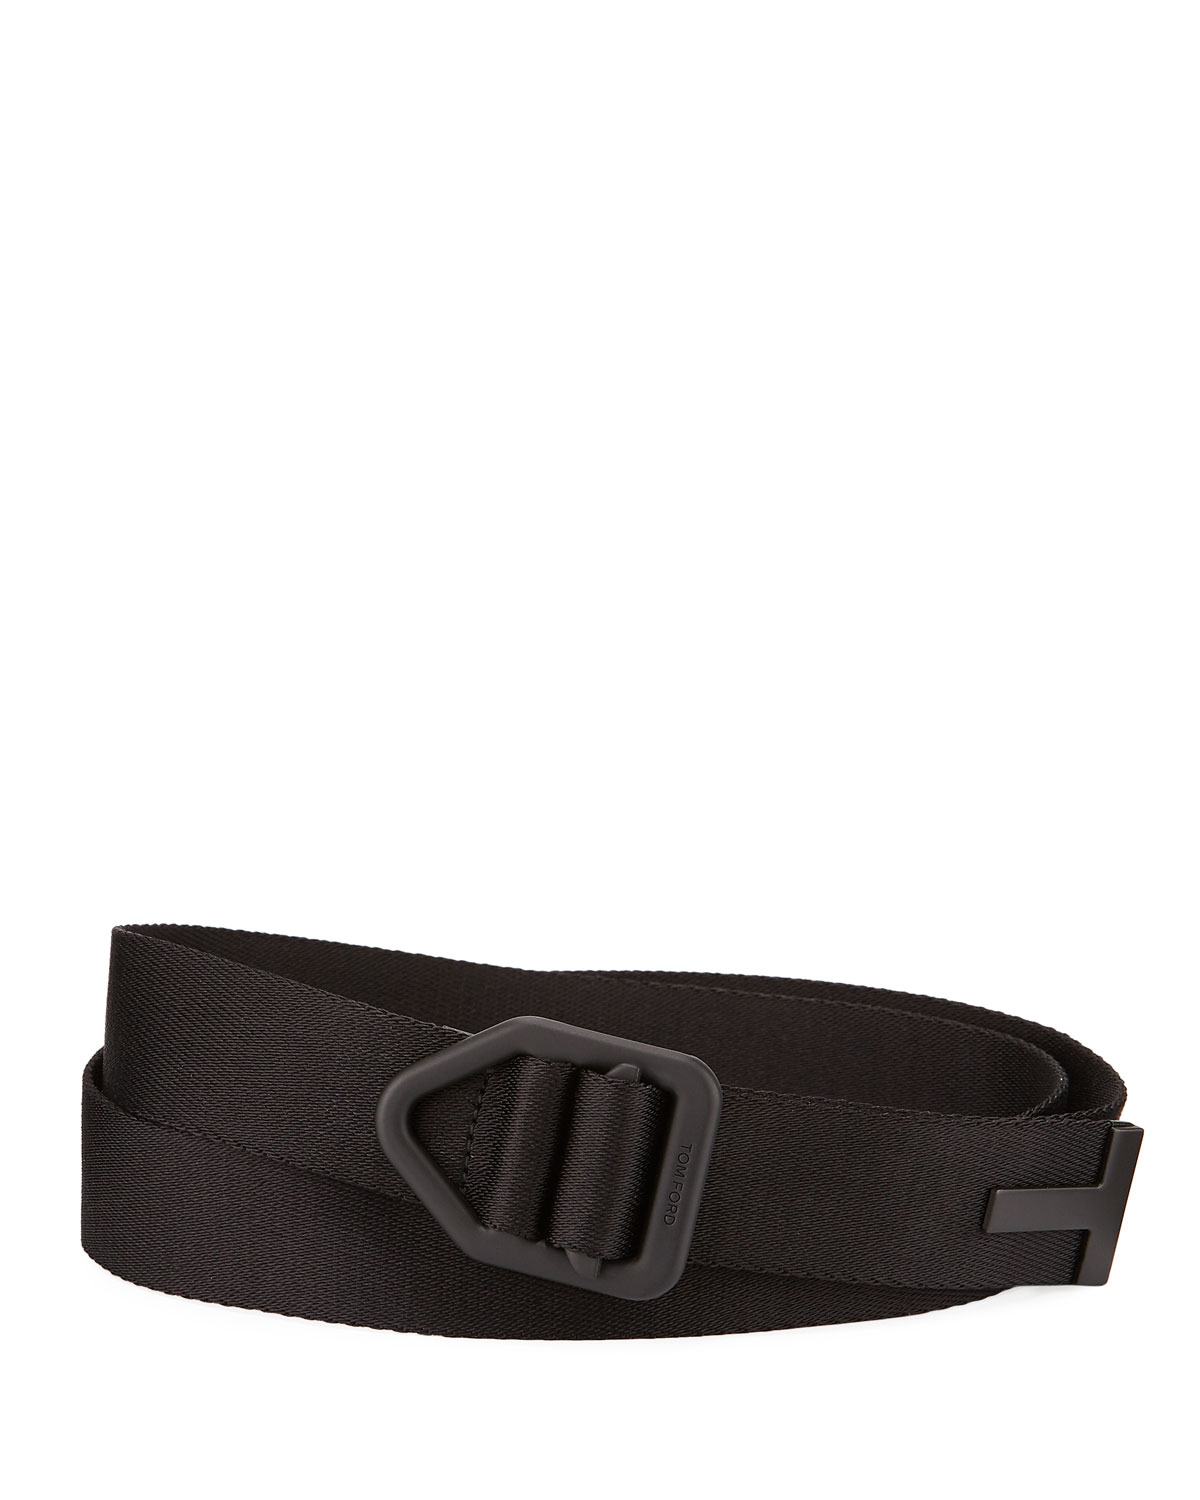 Men's Nylon Belt